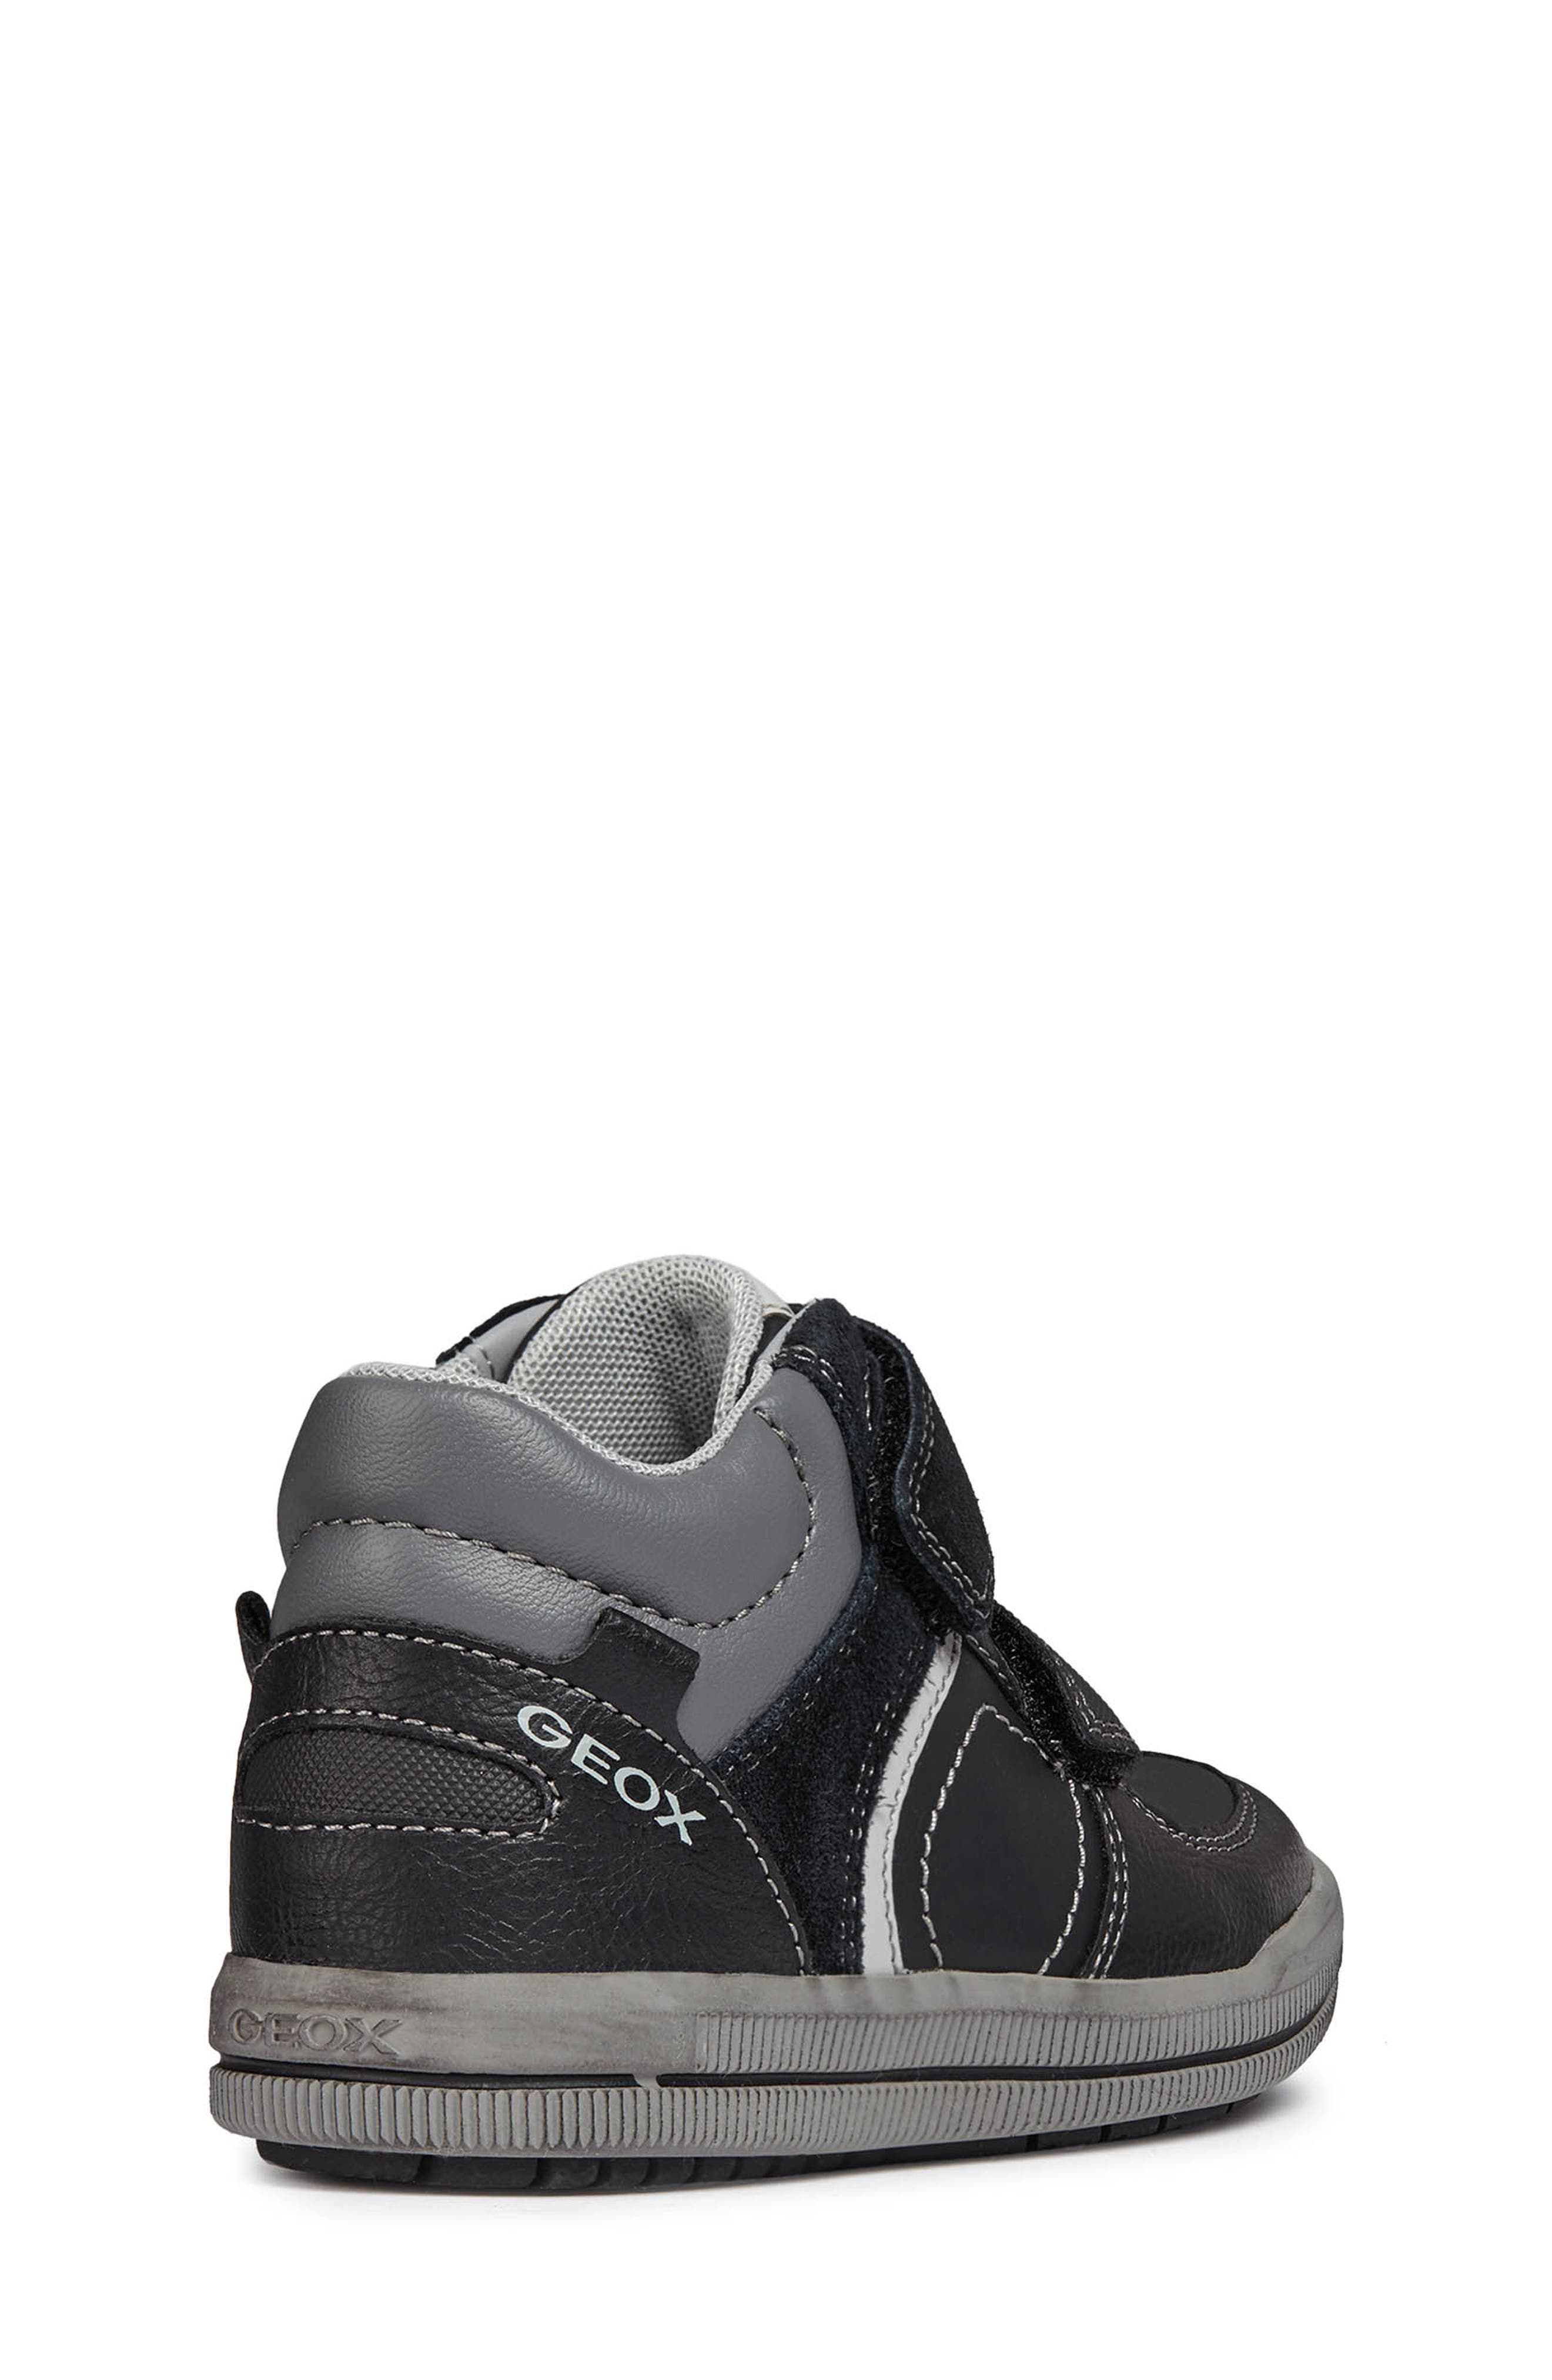 Arzach High-Top Sneaker,                             Alternate thumbnail 6, color,                             BLACK/DARK GREY